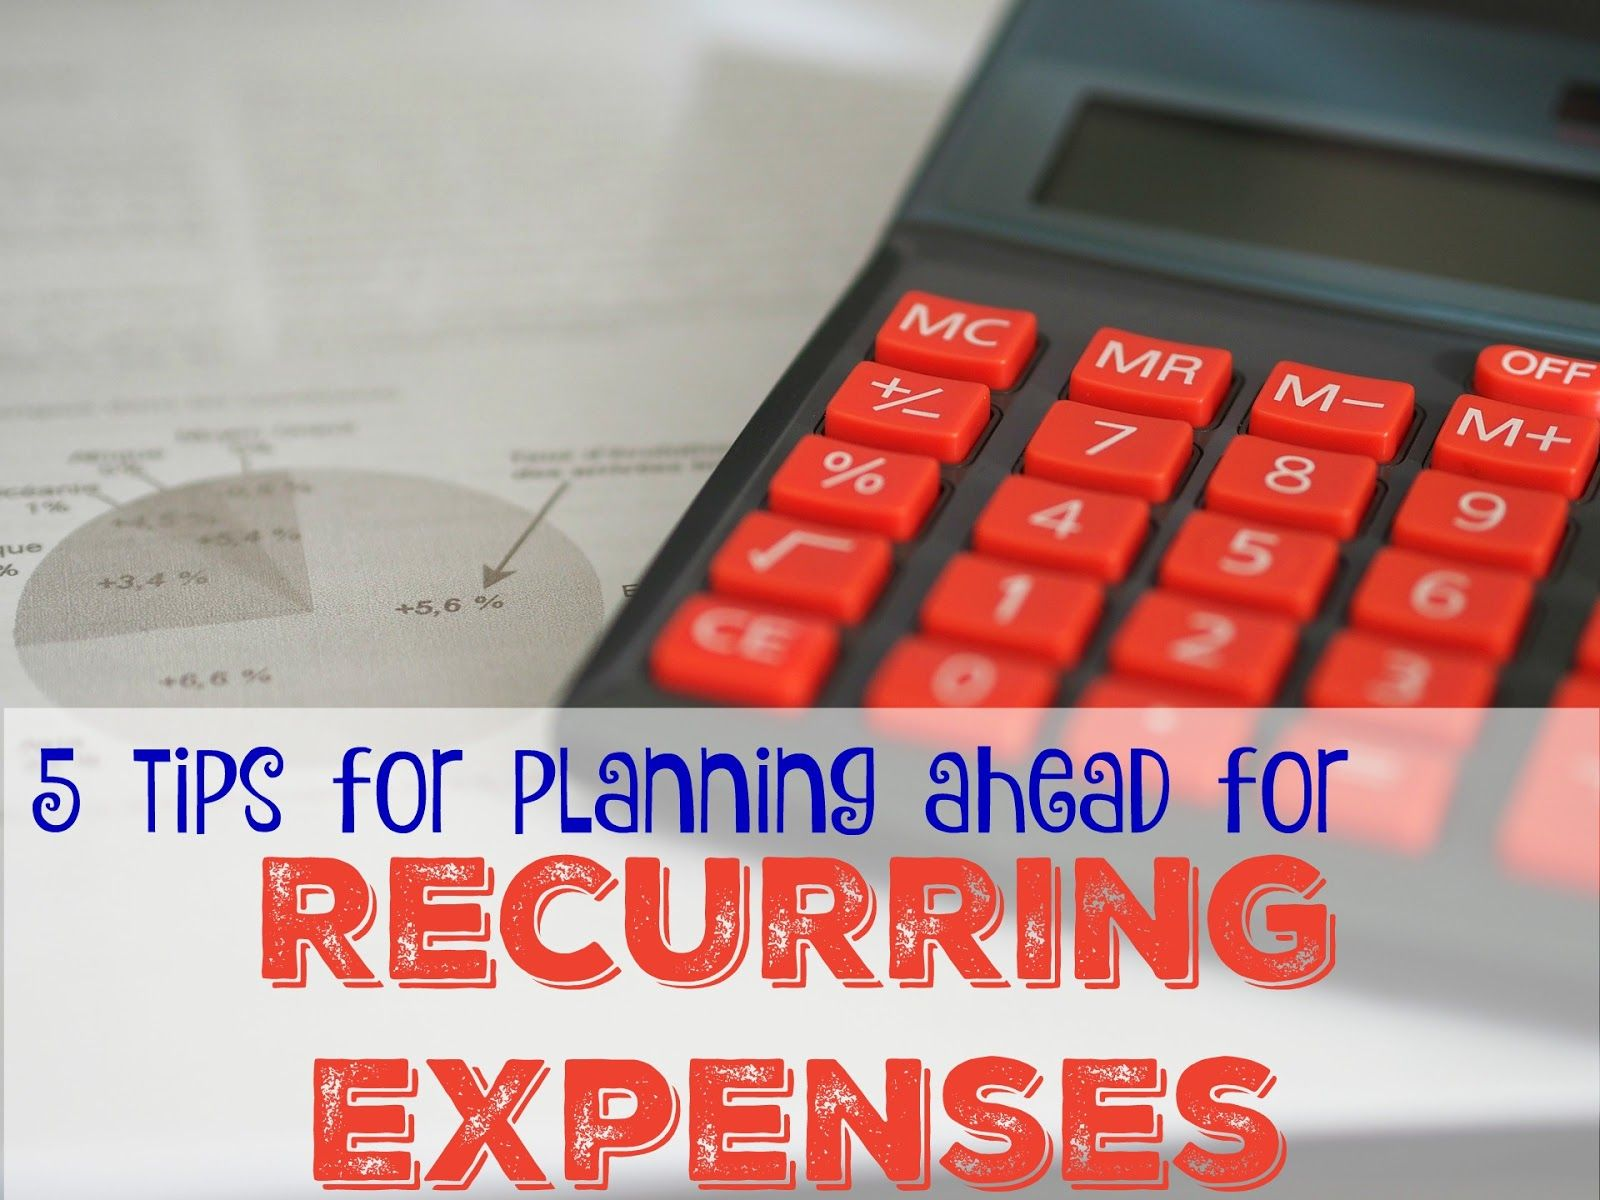 Tips for planning ahead for recurring expenses. How to